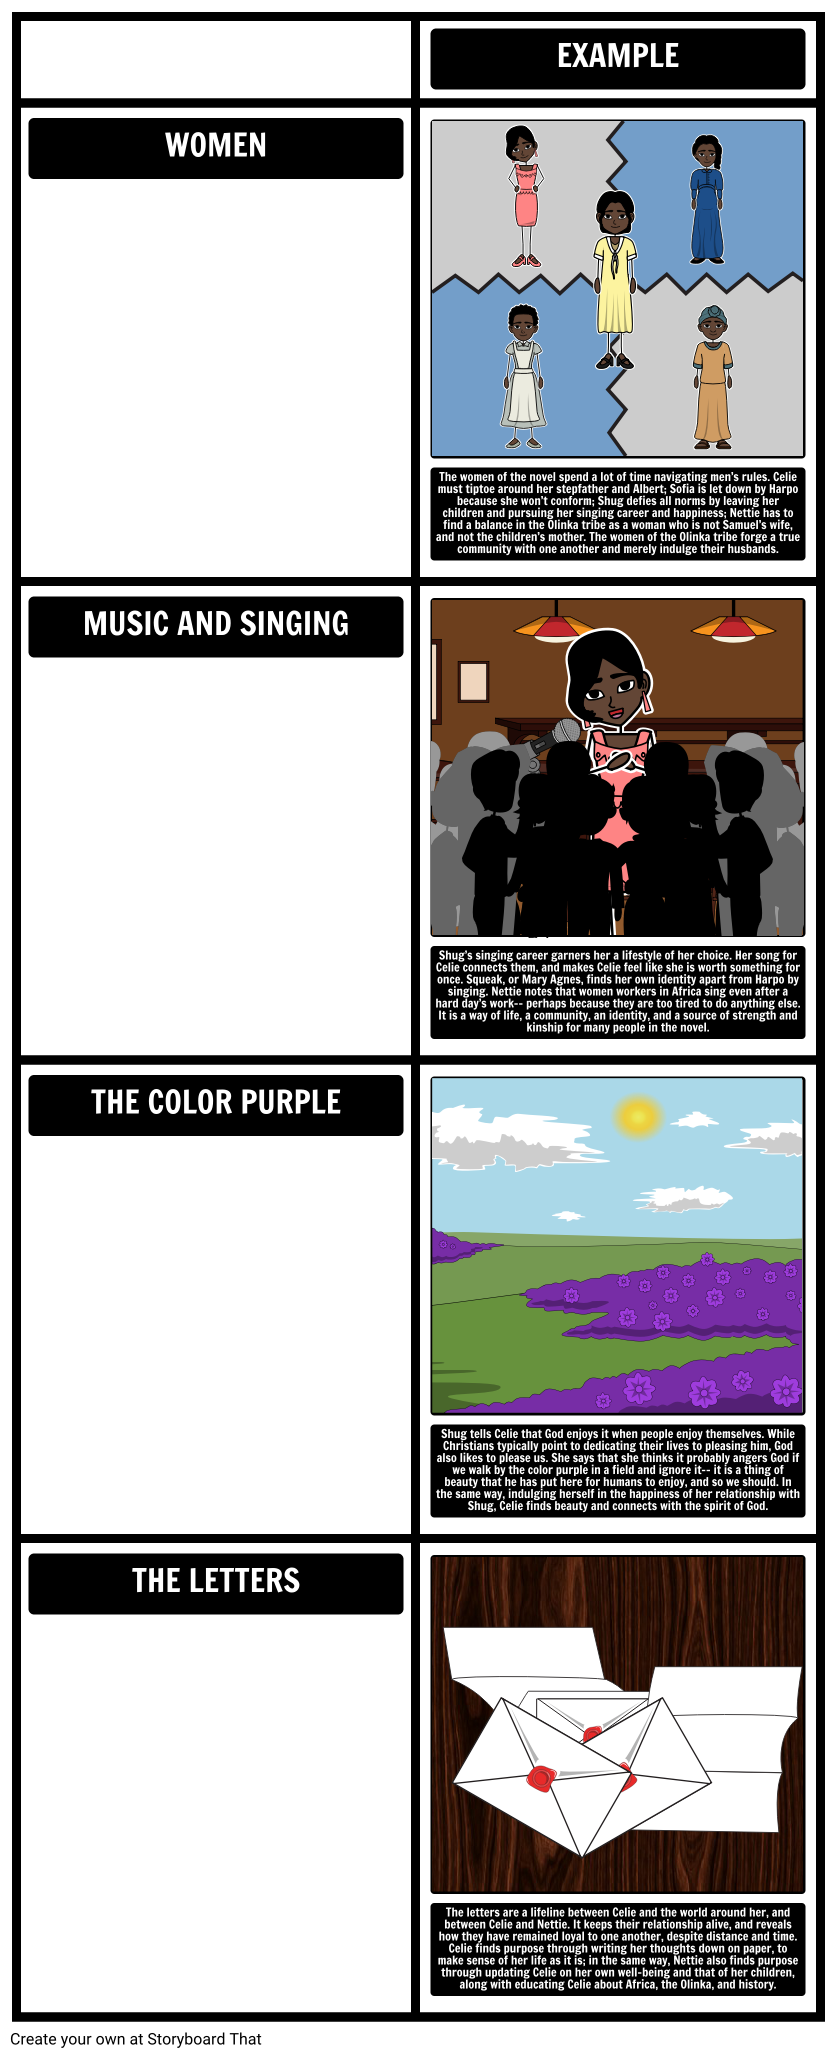 The Color Purple by Alice Walker - Themes, Symbols, and Motifs ...